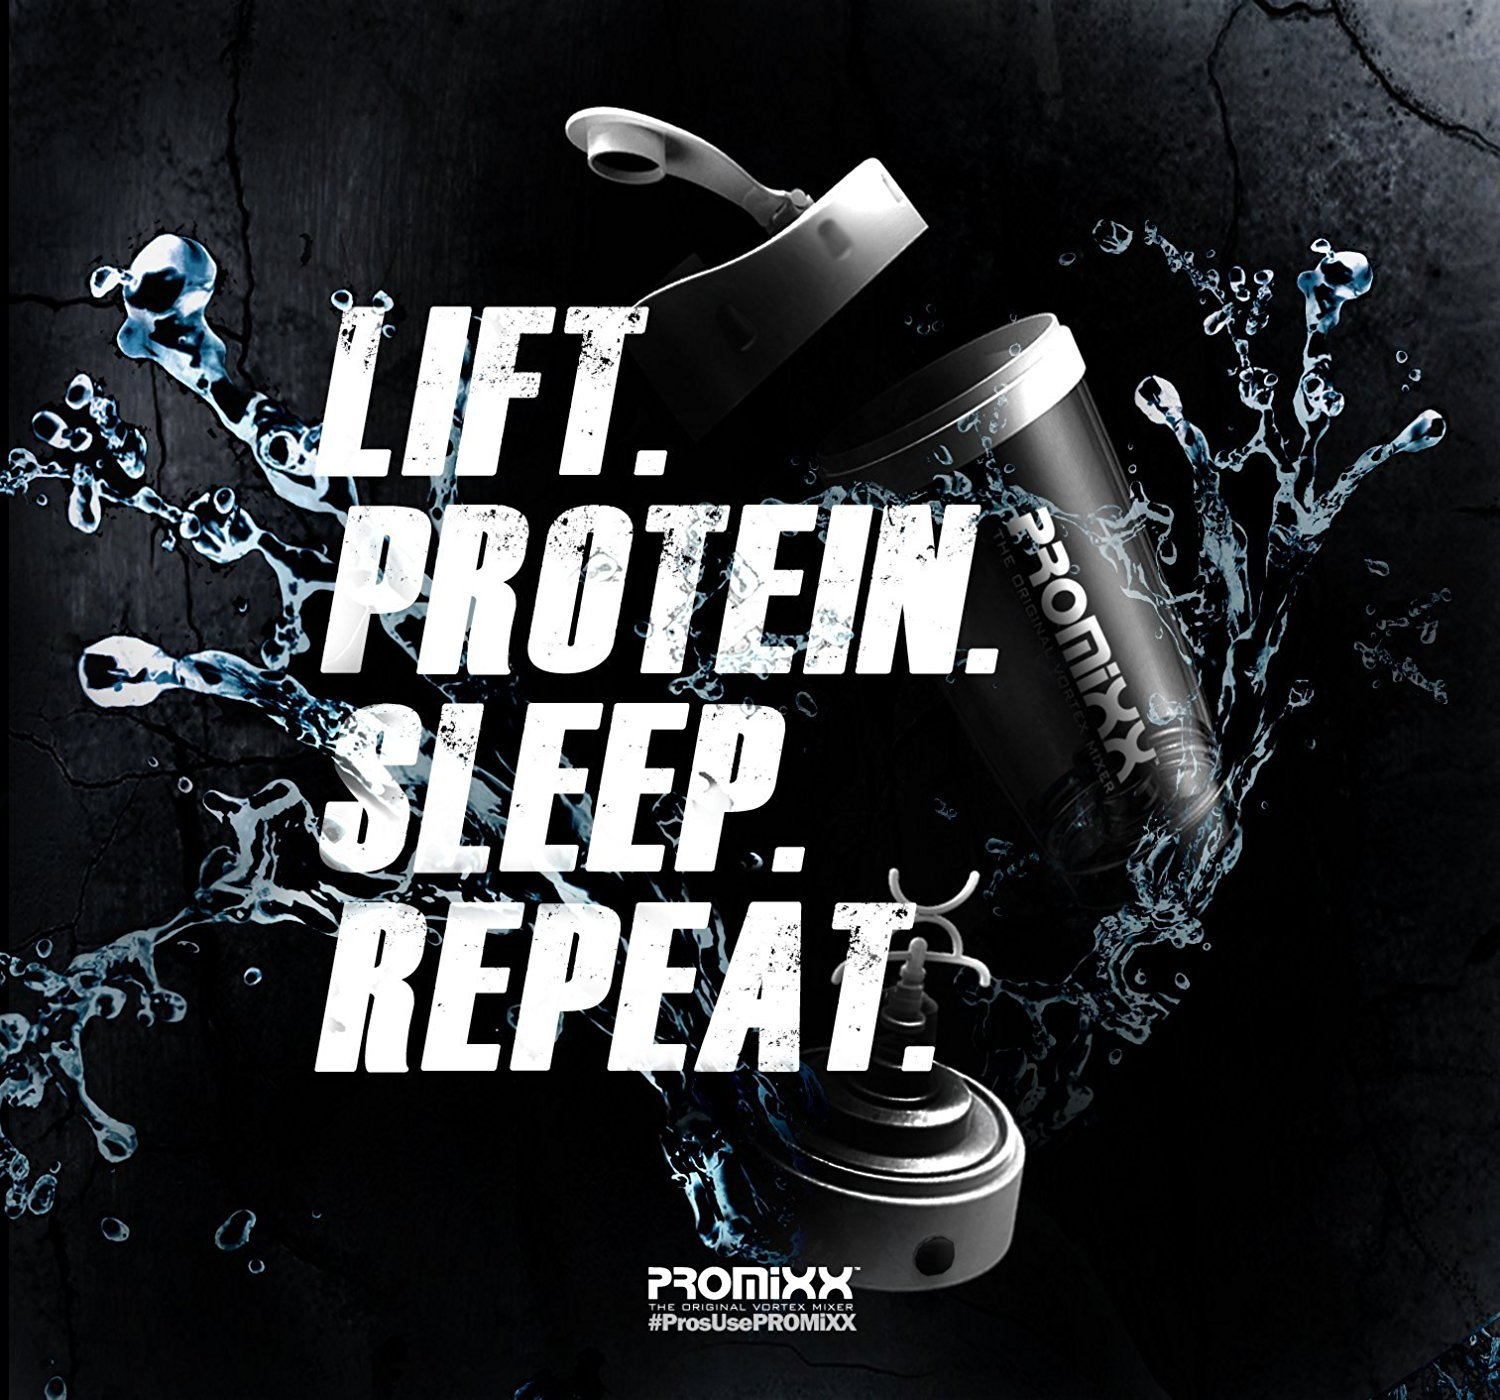 PROMiXX (2018 Model) - The Original Vortex Mixer | Beautifully Engineered High-Torque Battery-Powered Protein Shaker Bottle with X-Blade Technology | 600ml/20oz (Black) by Promixx (Image #6)